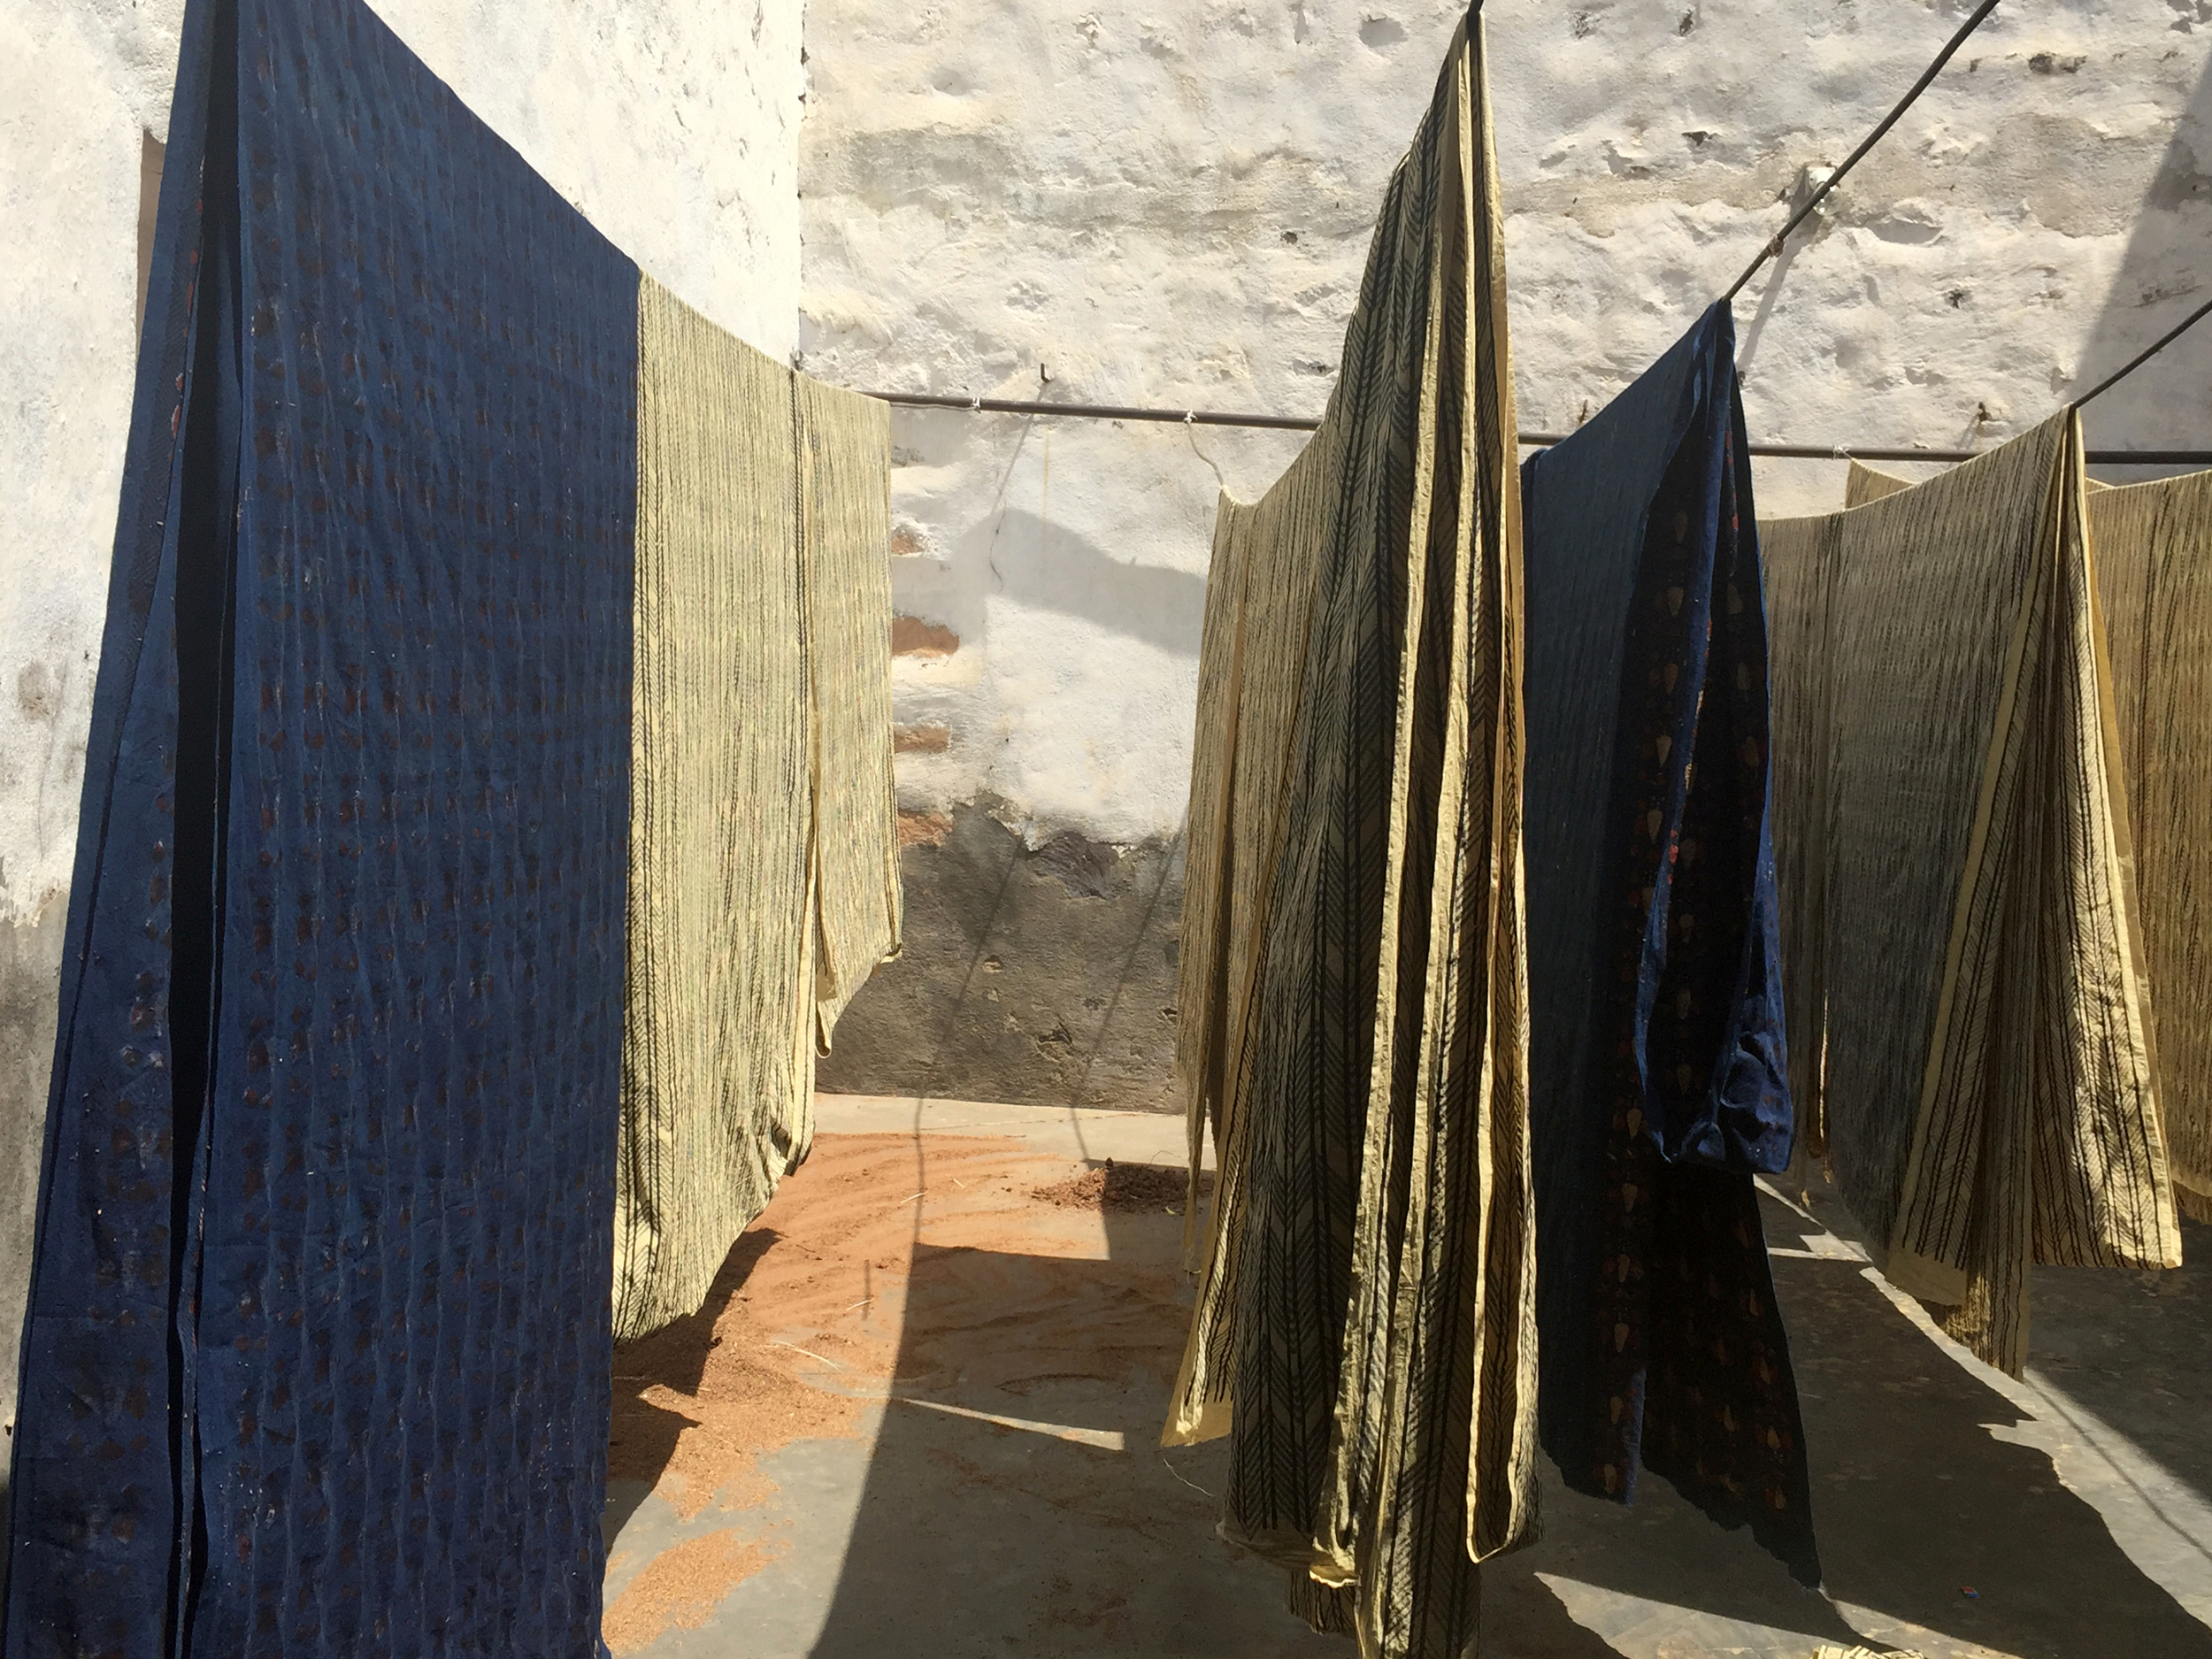 Having read about a 5th generation family of Indigo-dye block printers in a small town in northwest India, in the Fall of 2015 we set out on a bumpy 3-hour drive with three brothers' first names but no address. We stopped at several tea vendors until one was able to point us down a dirt lane to a small house of natural dyers. There we witnessed the entire family, spanning several generations, quickly and precisely dipping hand-carved blocks into indigo dye baths, stamping yards of fabric and hanging them to dry in the small courtyard out back.  We have been working with this family ever since to develop beautiful natural-dyed block-printed designs to incorporate into our collection for IMMODEST COTTON. To create the block printed fabrics that we use in IMMODEST COTTON, the cotton is first printed by hand using a mud-based resist-paste, then dyed using natural indigo, revealing the pattern in white. This technique requires time, practice and patience, and is both a scientific and artistic endeavor. It results in unique variations within the print, enriching the character of each product.